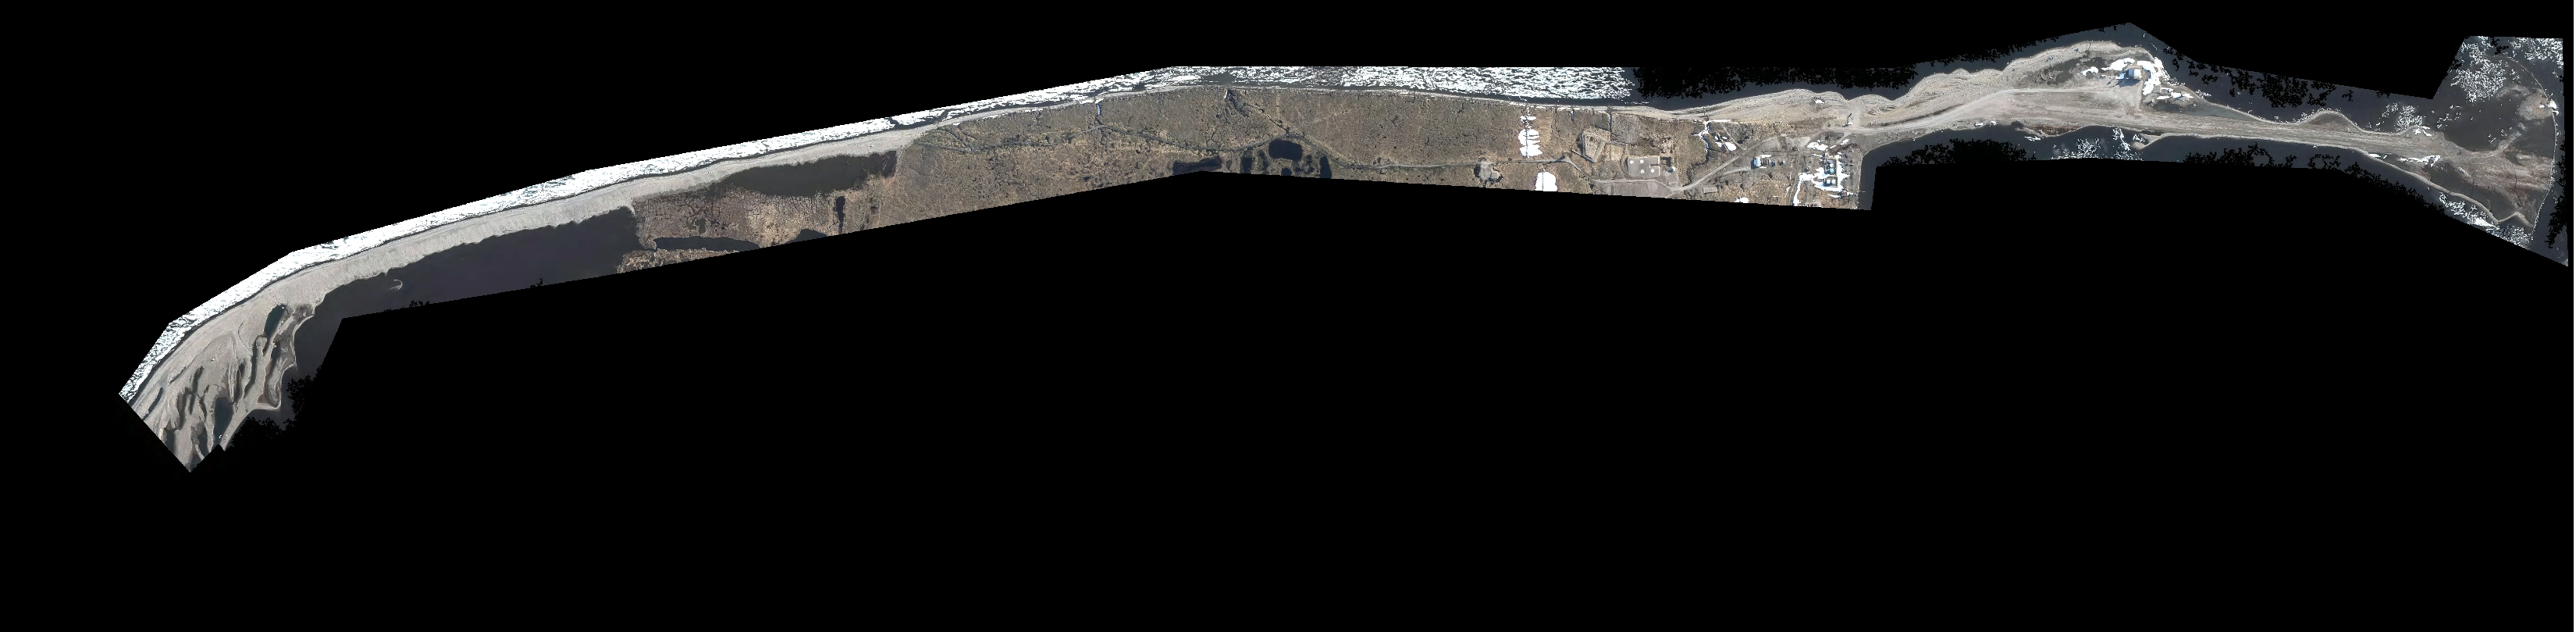 Browse image of the orthomosaic generated from photogrammetry and aerial images acquired over Barter Island, Alaska July 01 2014